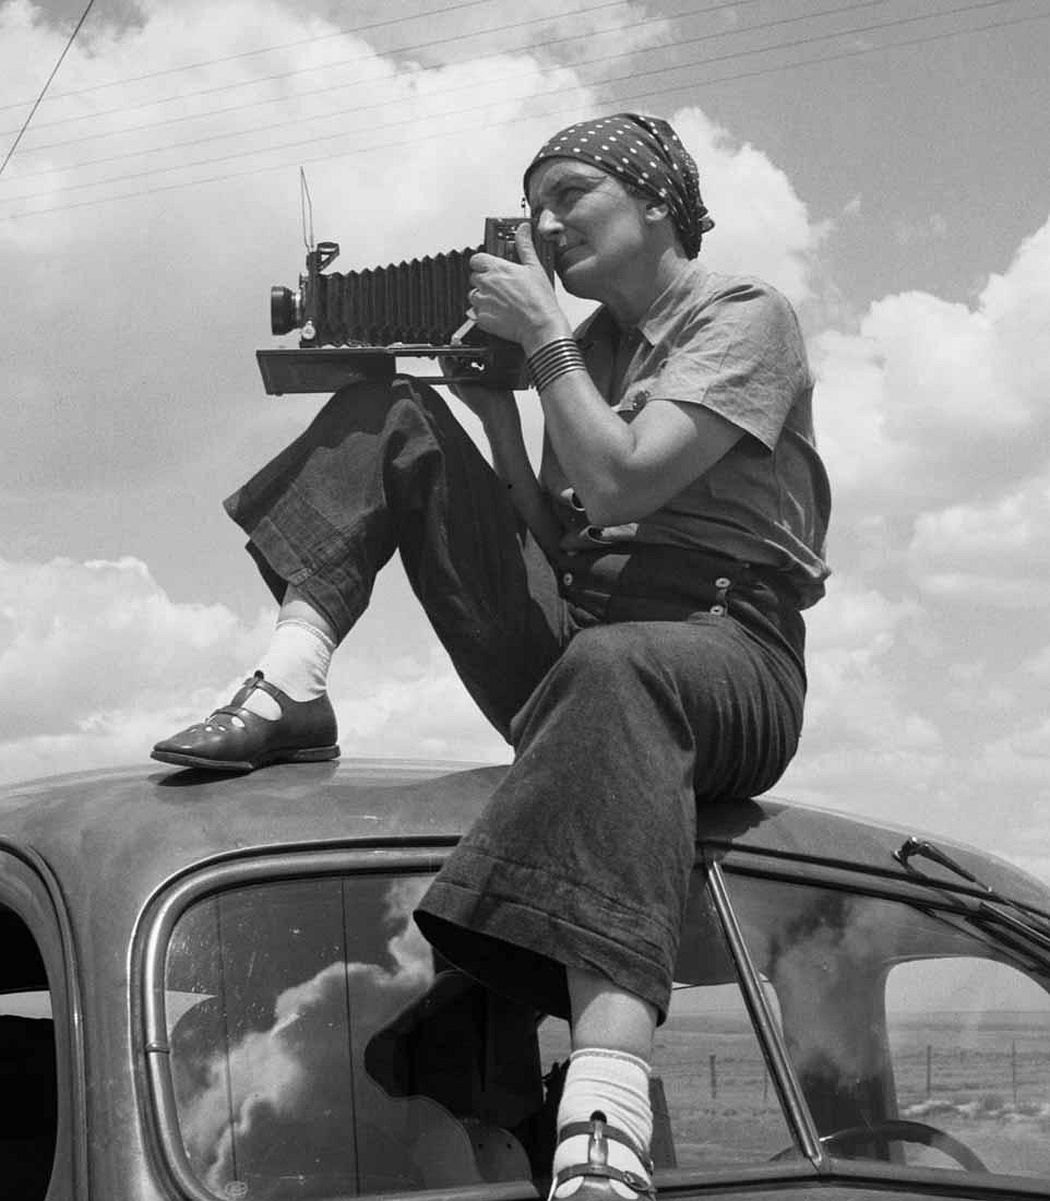 Paul S. Taylor. Dorothea Lange in Texas on the Plains, ca. 1935. Archival pigment print. © The Dorothea Lange Collection, the Oakland Museum of California, gift of Paul S. Taylor